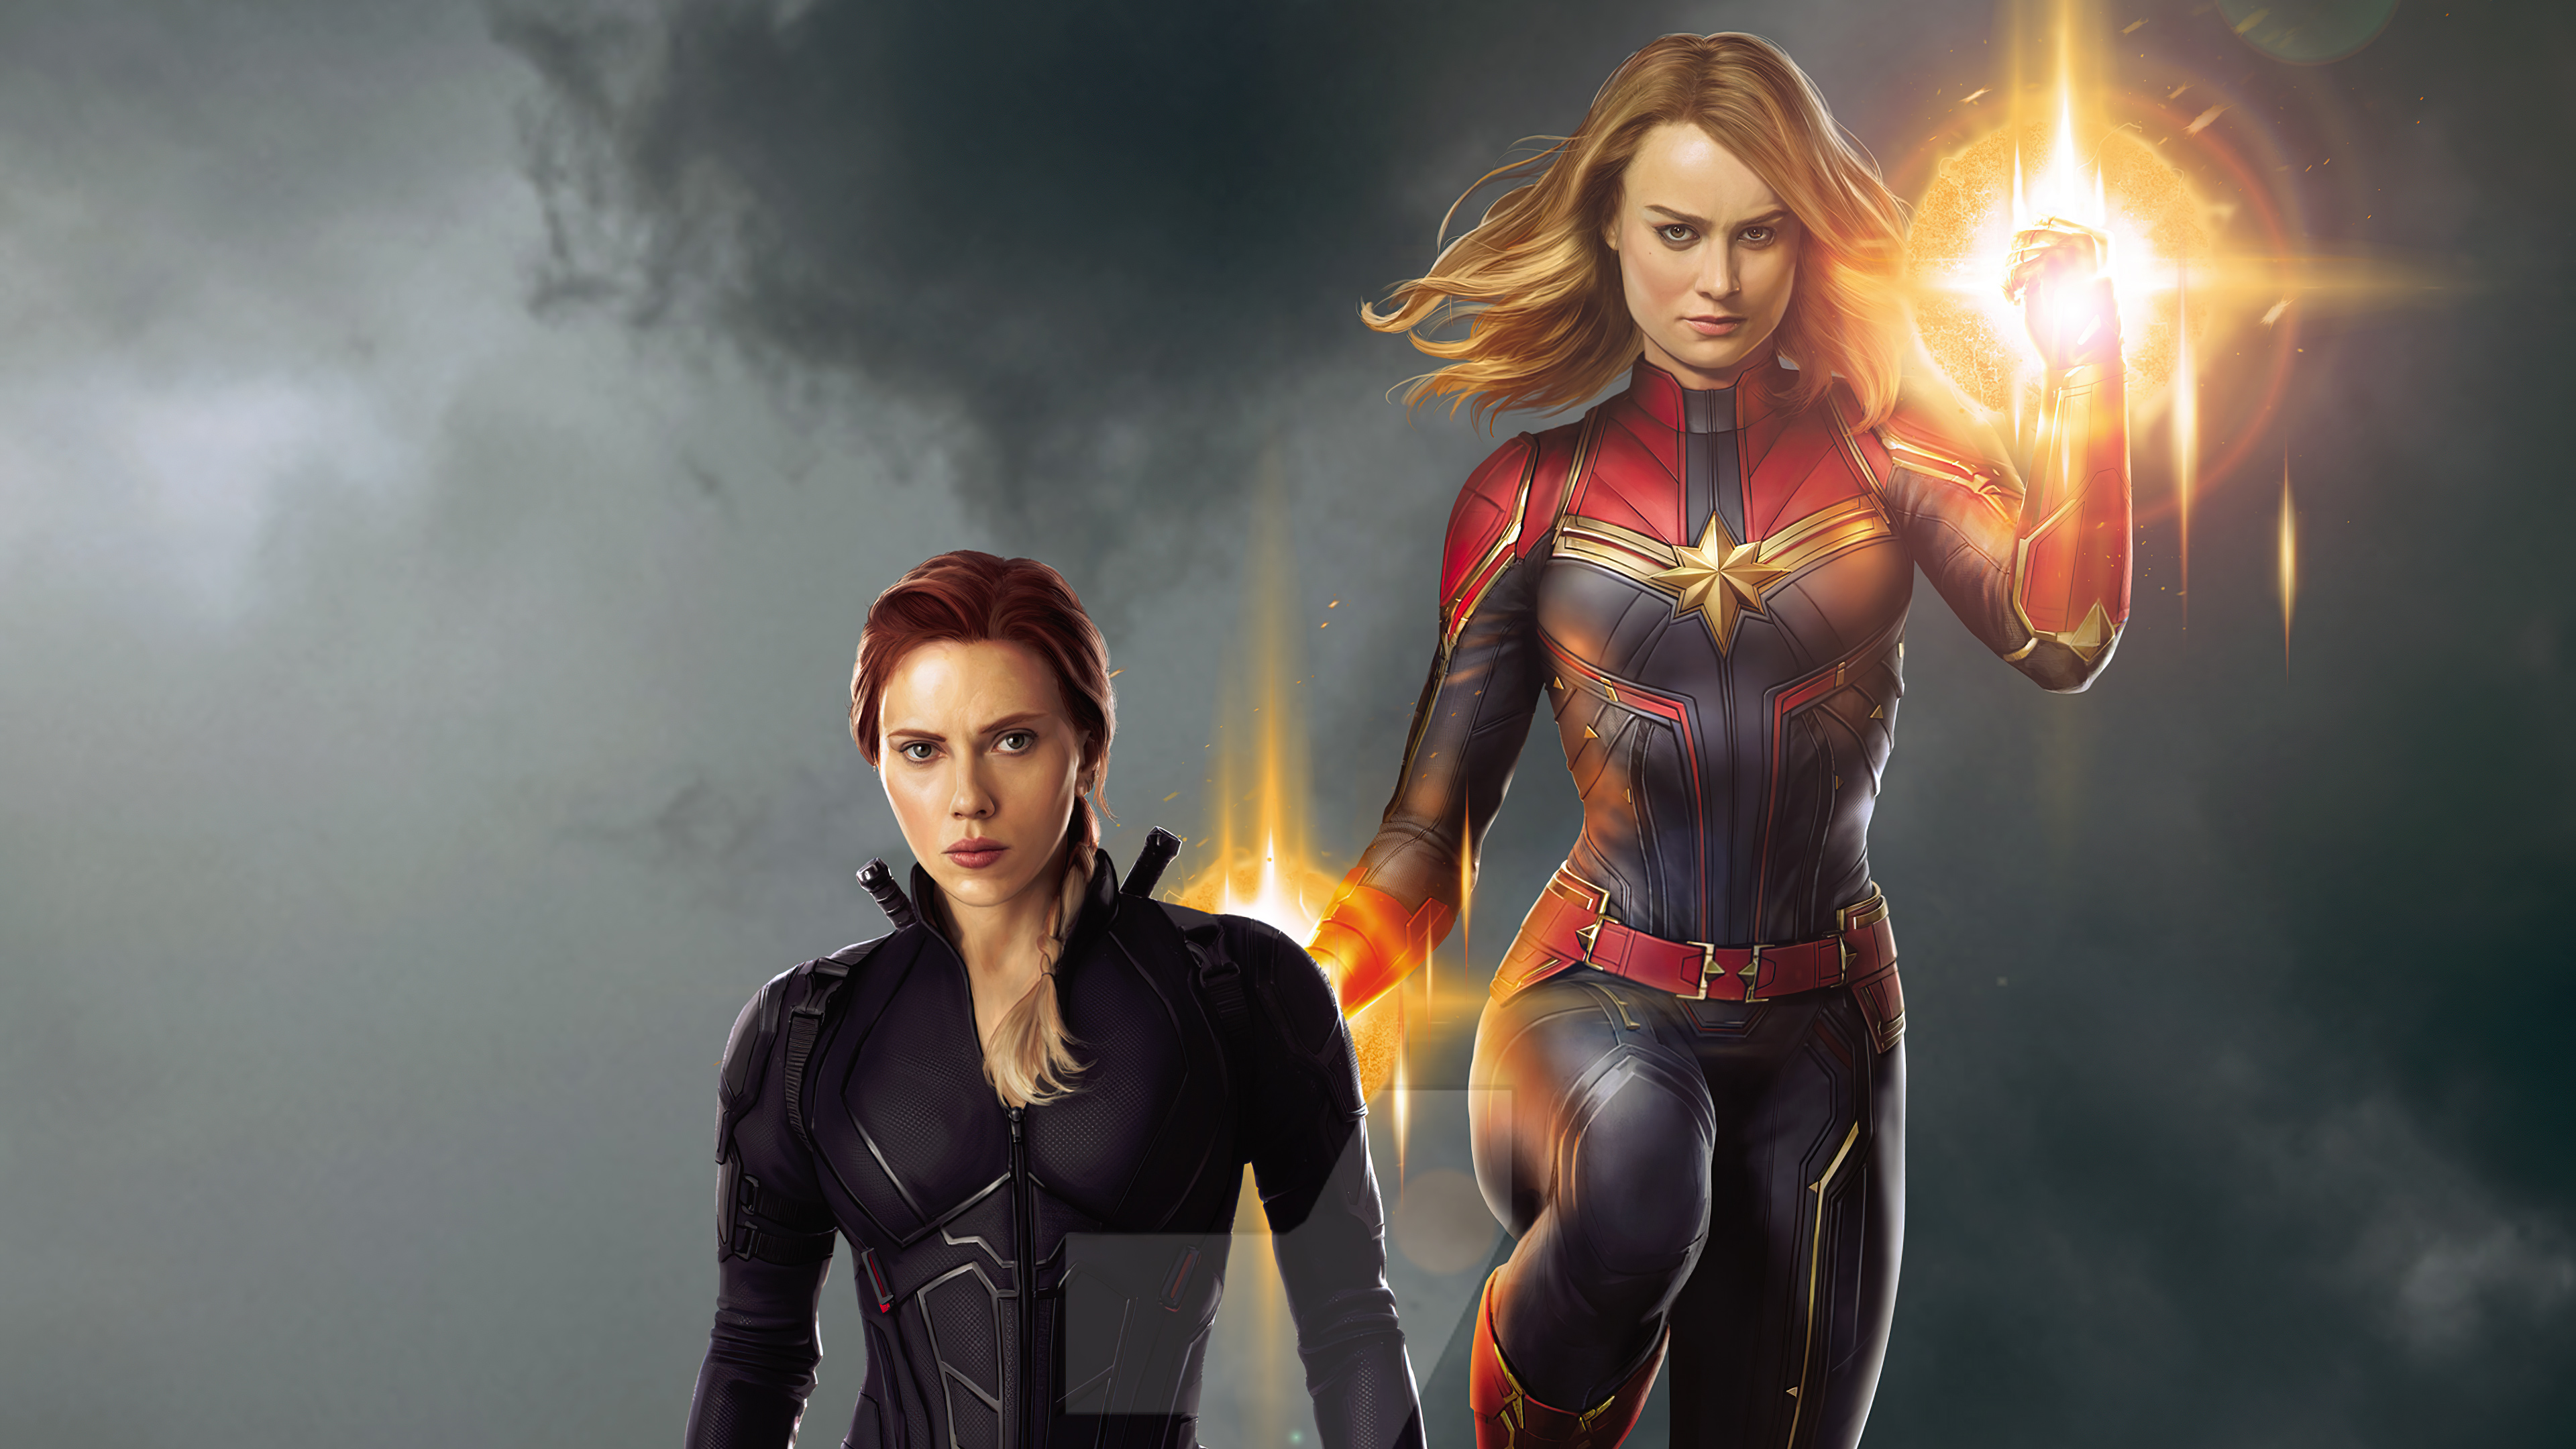 Wallpaper Captain Marvel and Black Widow